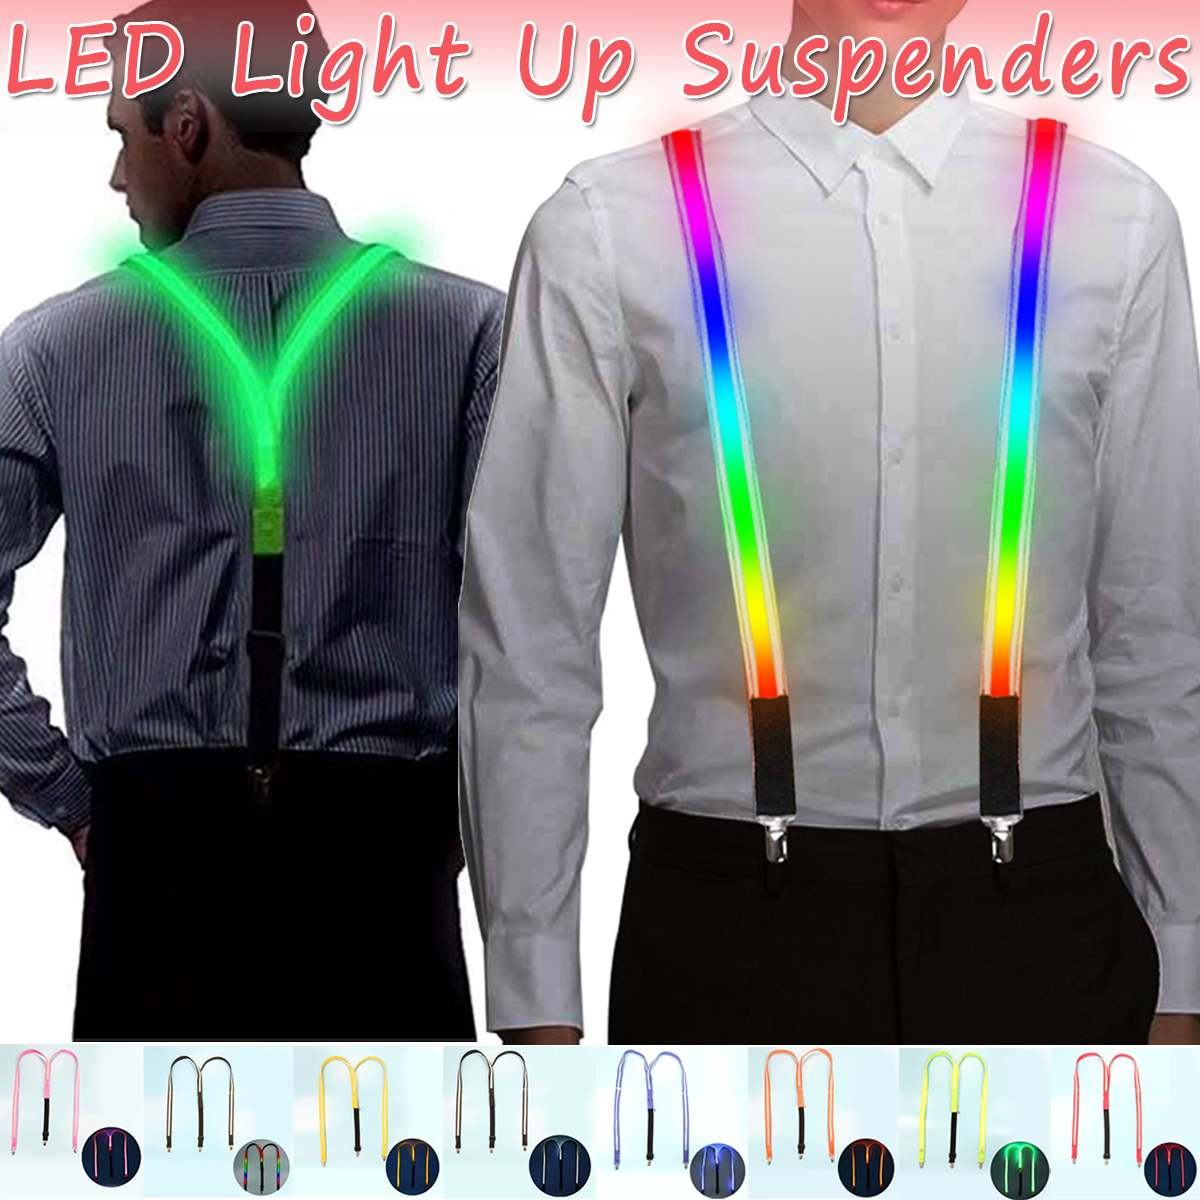 1PCS Printed LED Suspenders Men 3 Clips-on Braces Vintage Look Mens Suspender For Trousers Husband Male Suspensorio For Skirt